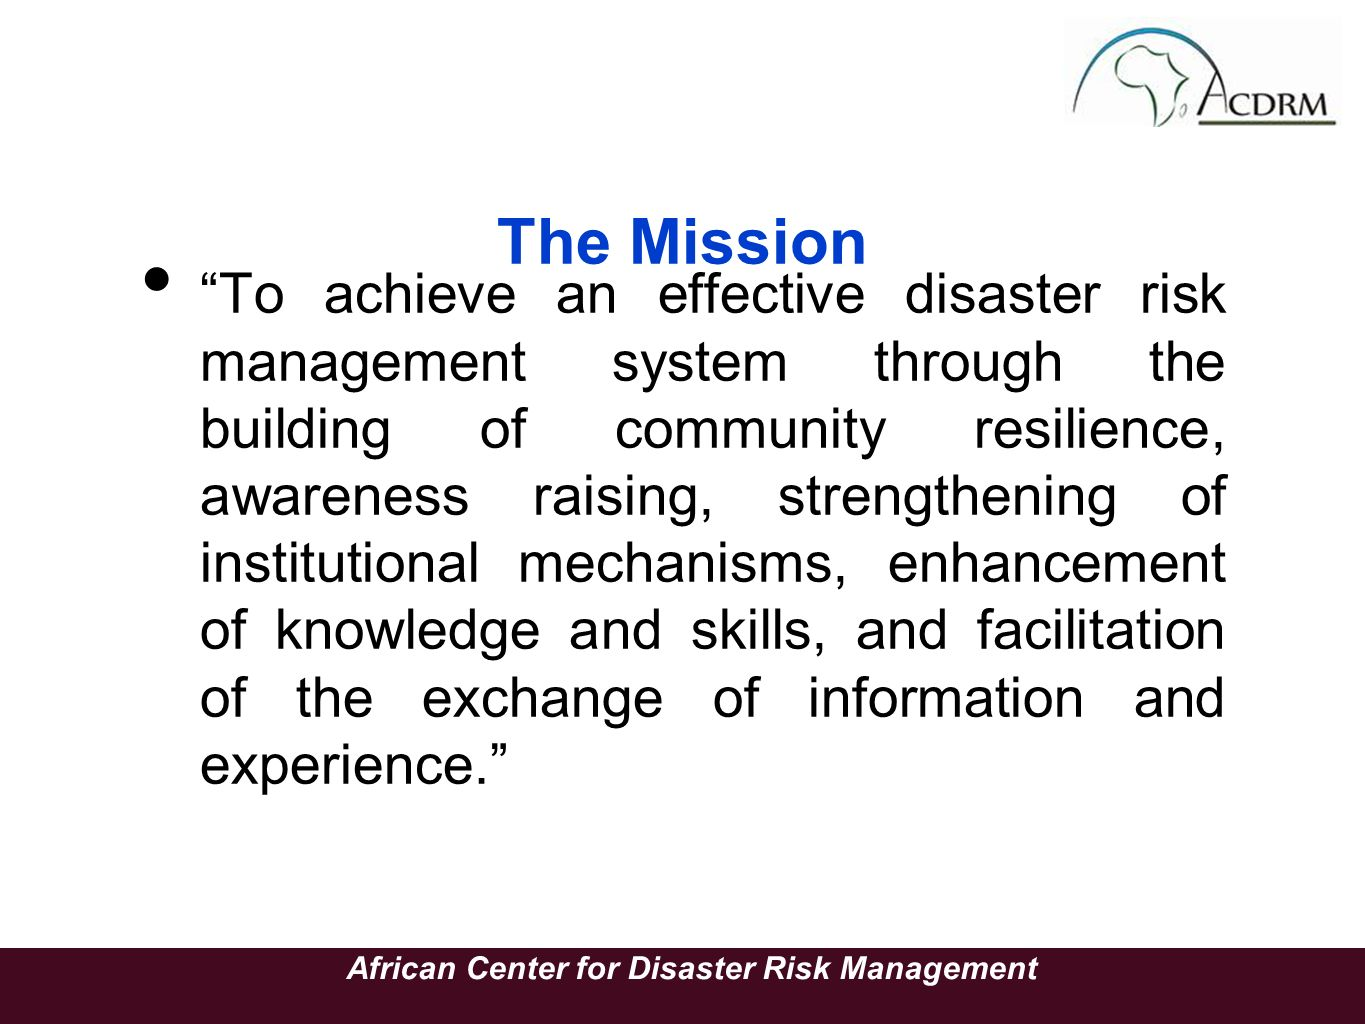 The Mission To achieve an effective disaster risk management system through the building of community resilience, awareness raising, strengthening of